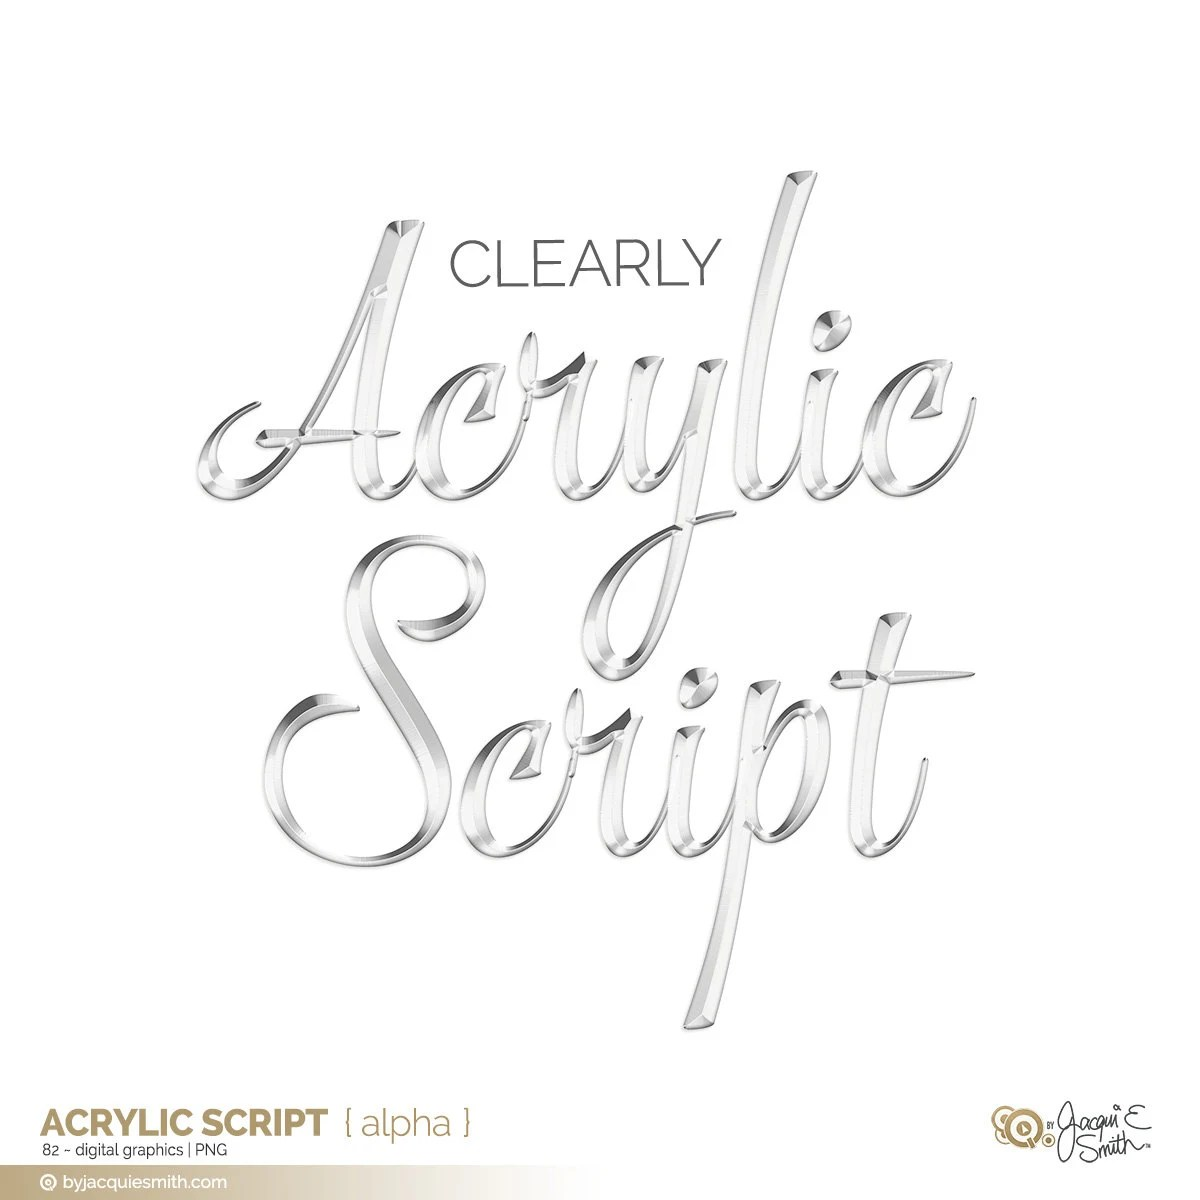 Clear Acrylic Script: Digital Scrapbooking Alpha